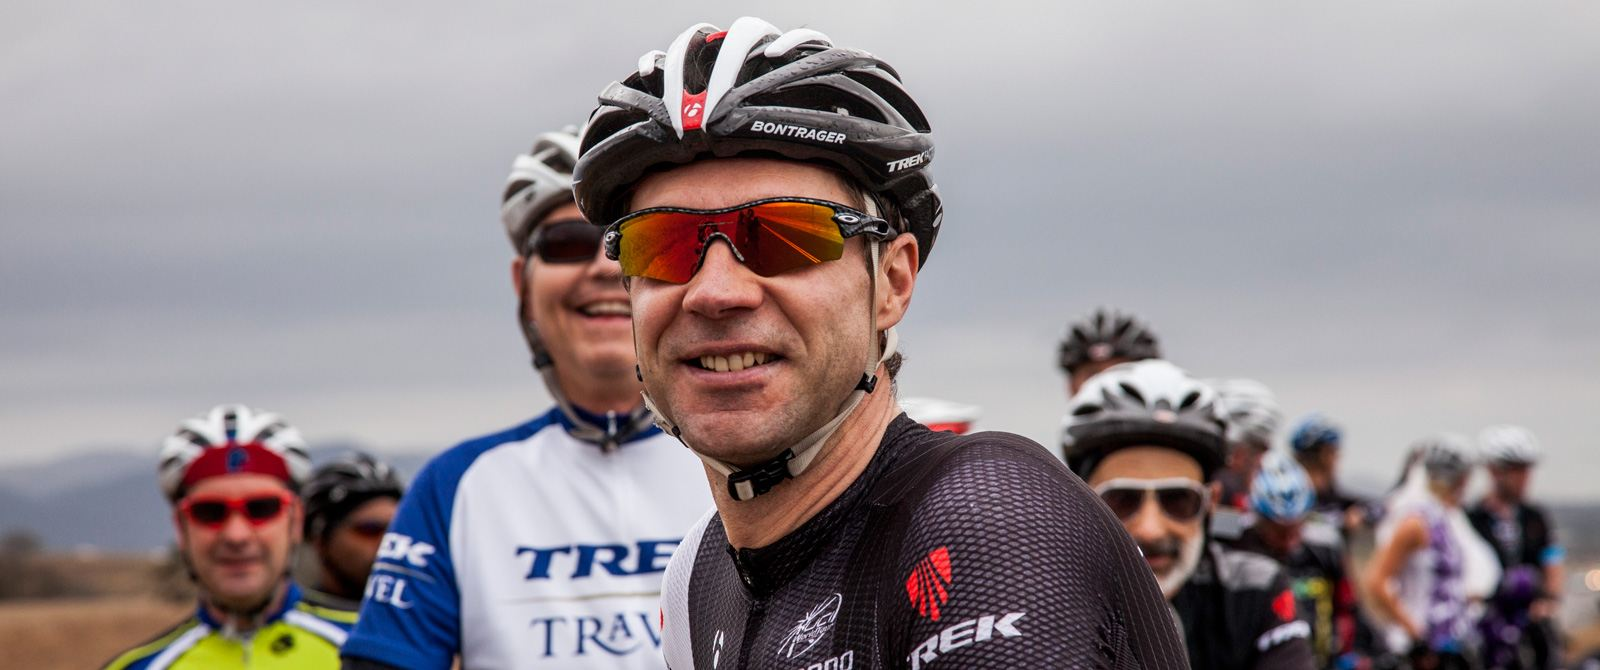 ed84a6e95 Trek Travel cycling vacation with Tour de France hero Jens Voigt